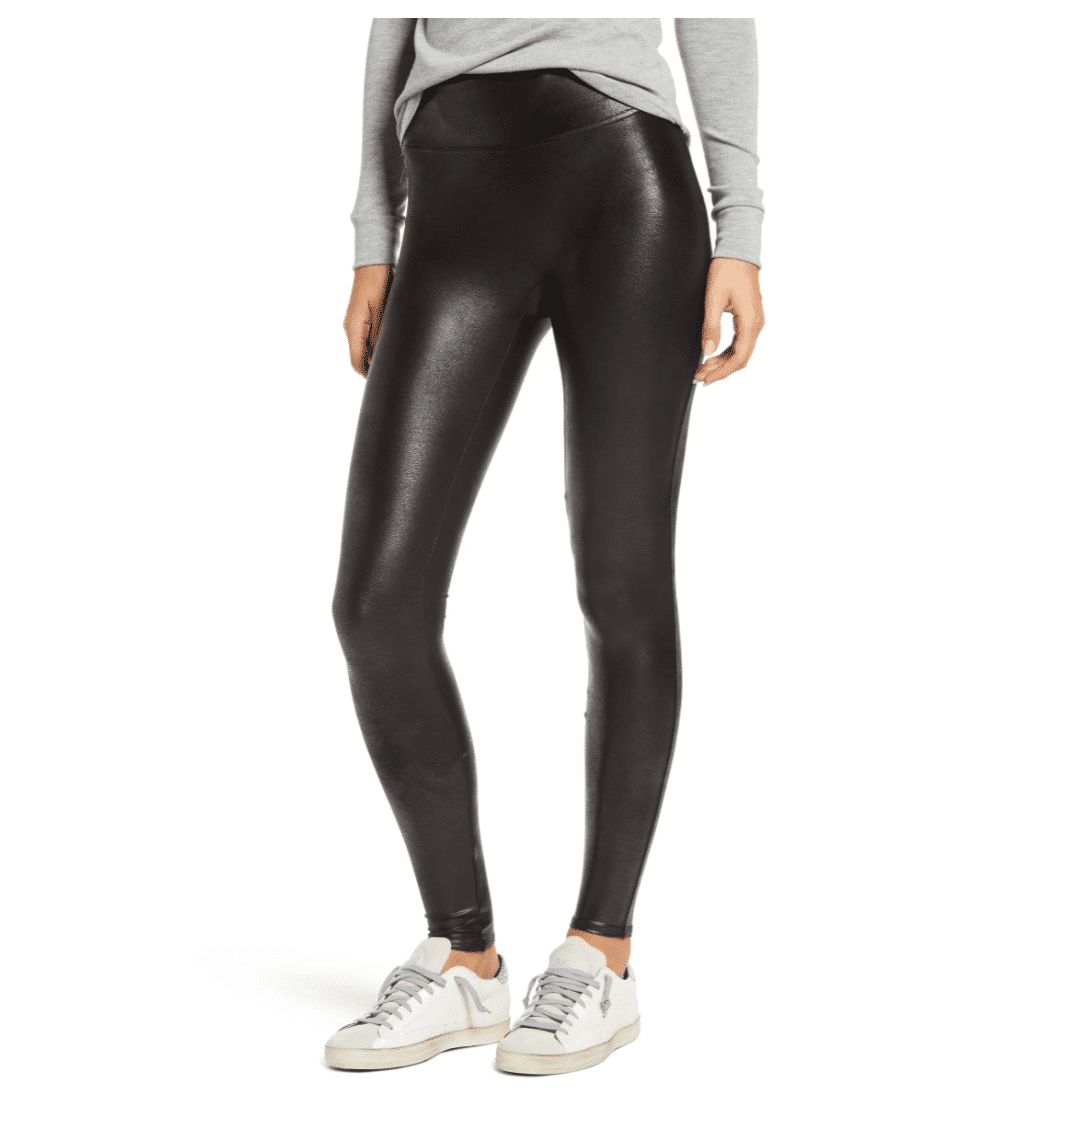 Best Gifts For Her 2020 Gift Guide Faux Leather Leggings by Spanx